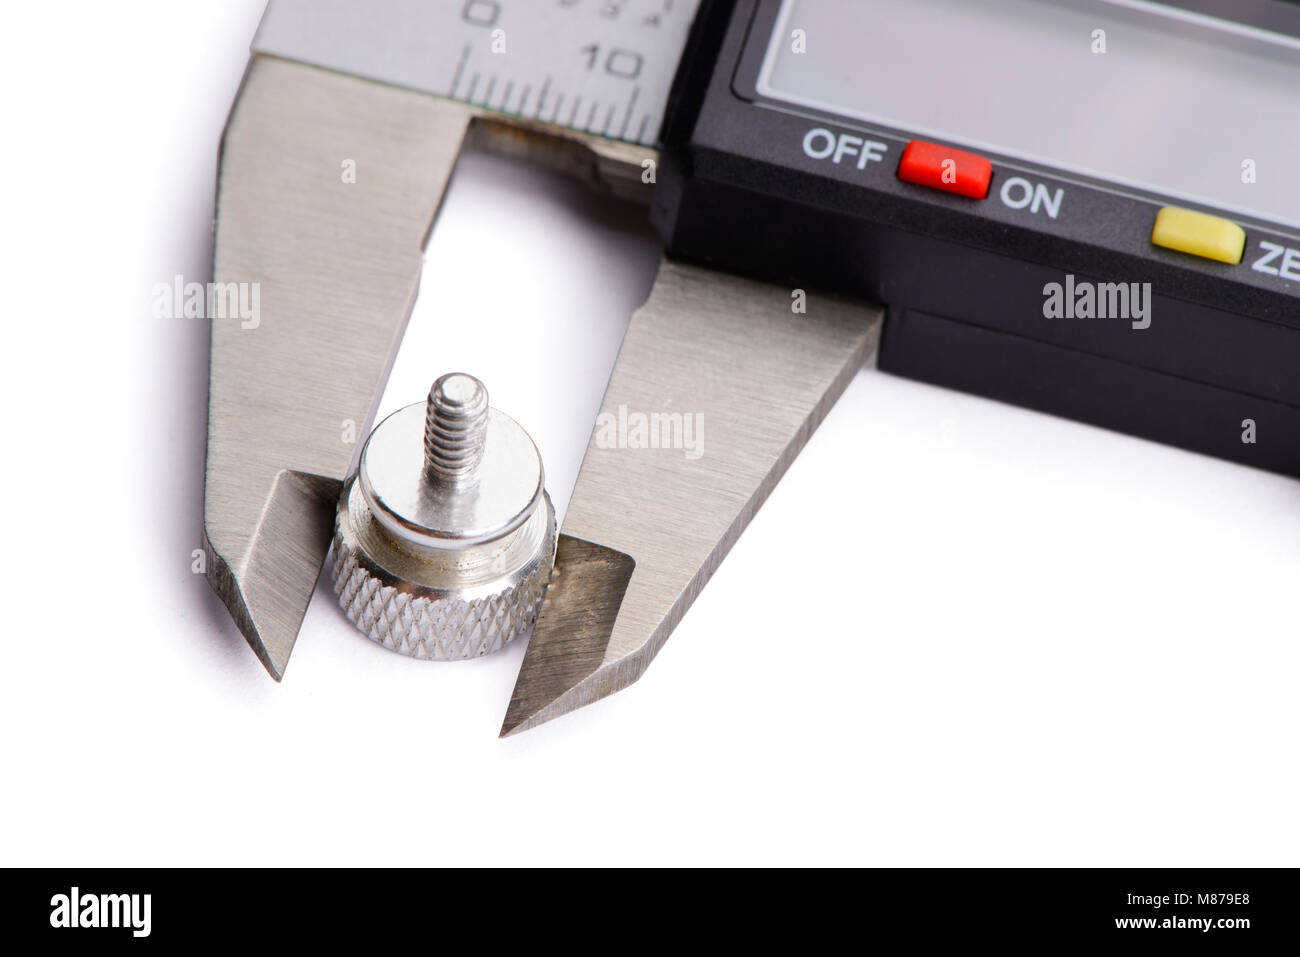 Digital calipers vernier working object. Isolated on white background - Stock Image